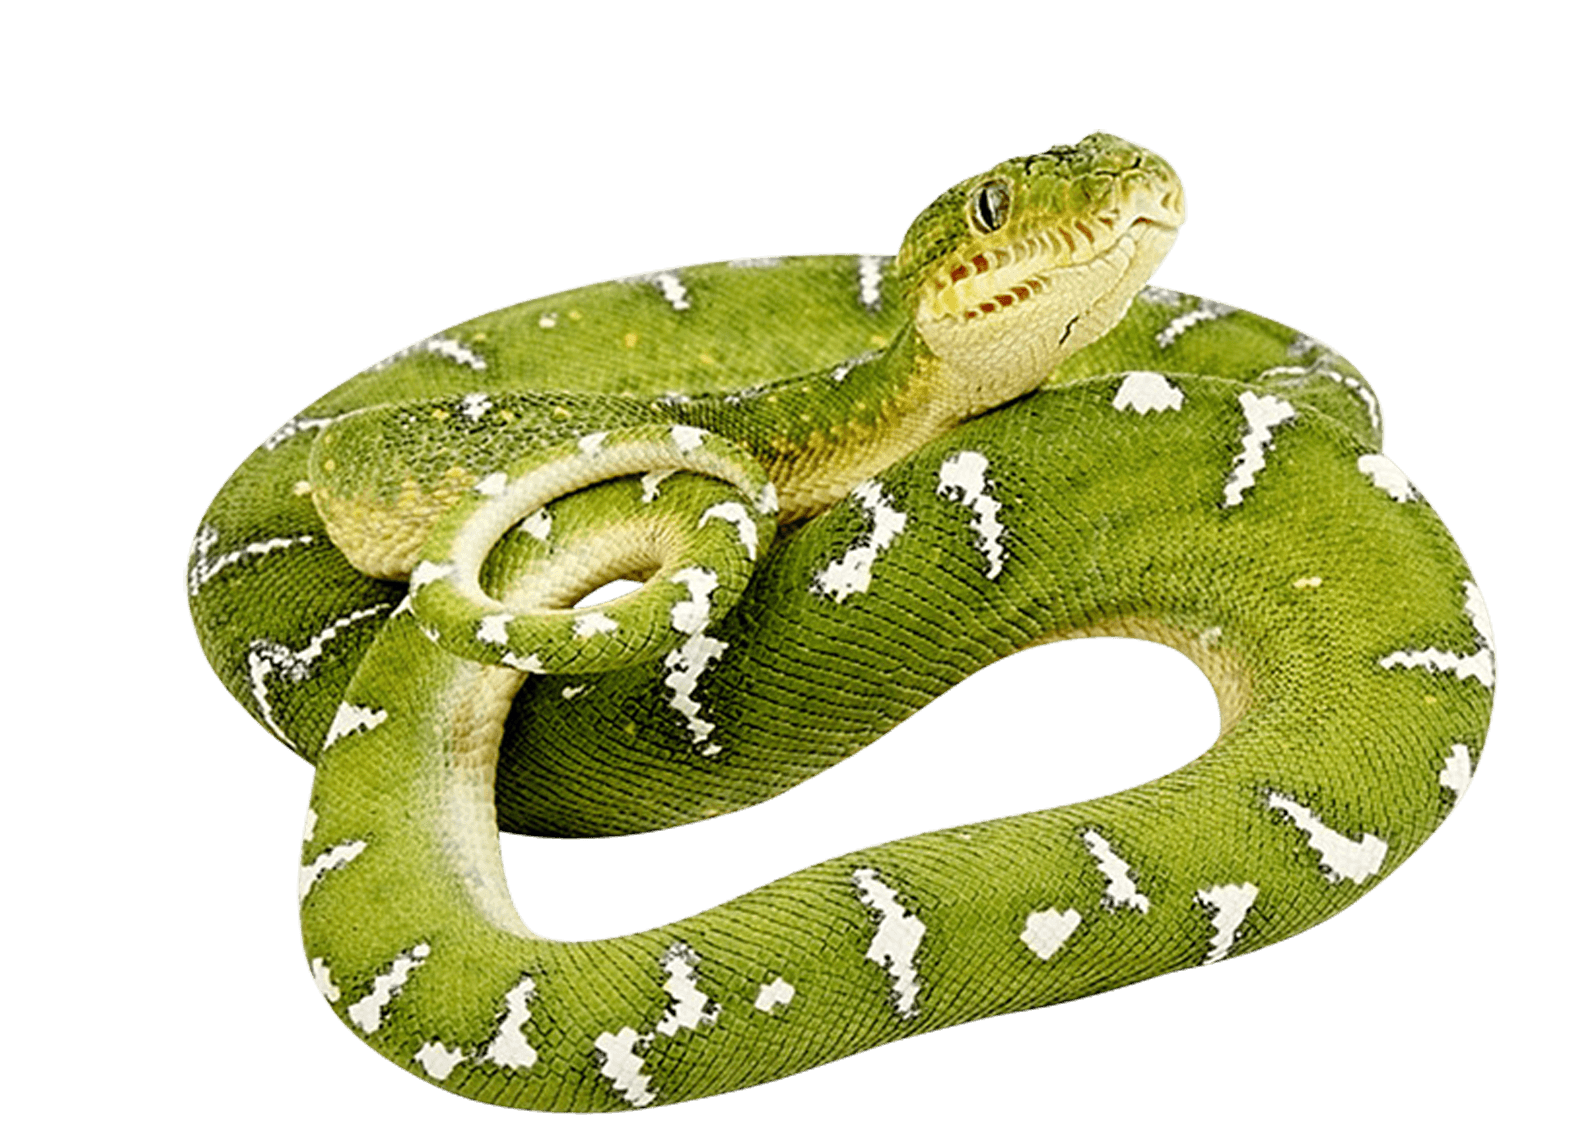 Brown tree snake clipart image stock Green Snake Png Image PNG Image | Zvířata | Pinterest | Snake ... image stock